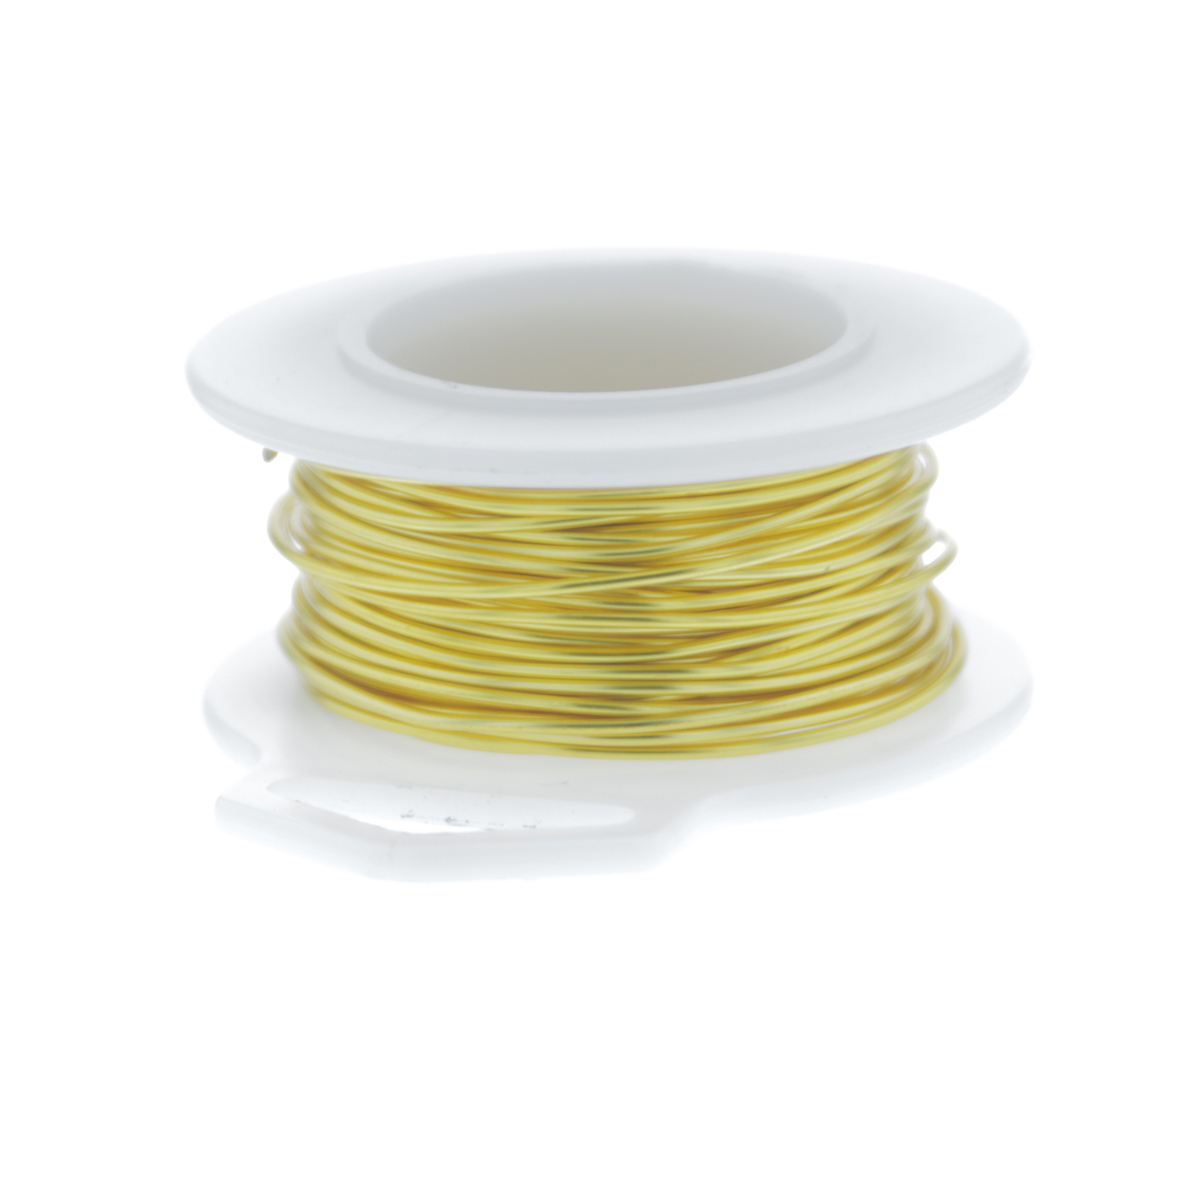 20 Gauge Round Silver Plated Yellow Copper Craft Wire - 25 ft: Wire ...